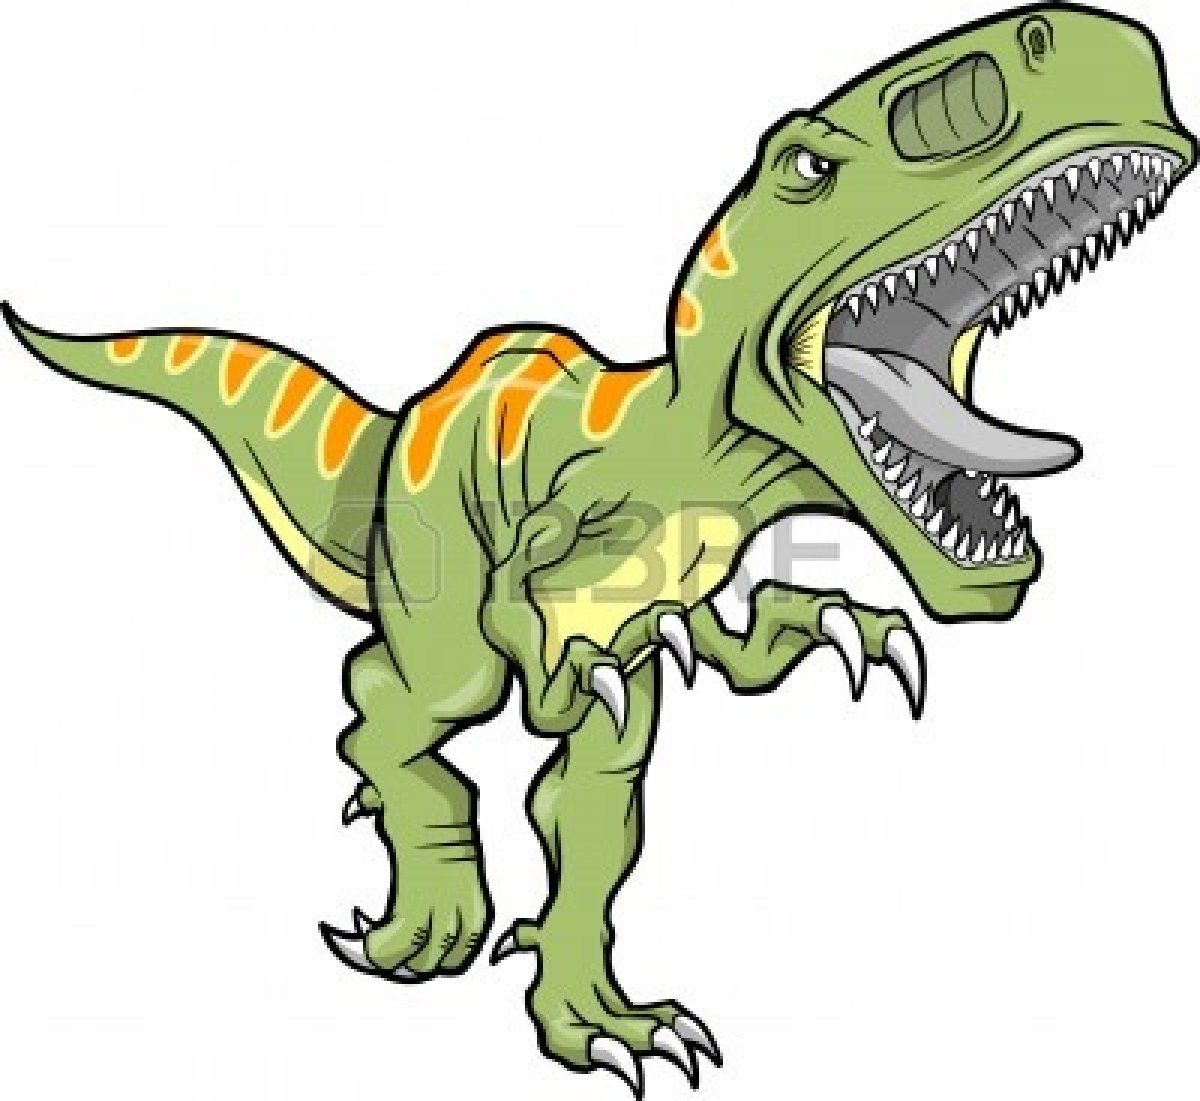 1200x1101 T Rex Dinosaur Clipart Toddler Homeschool Projects